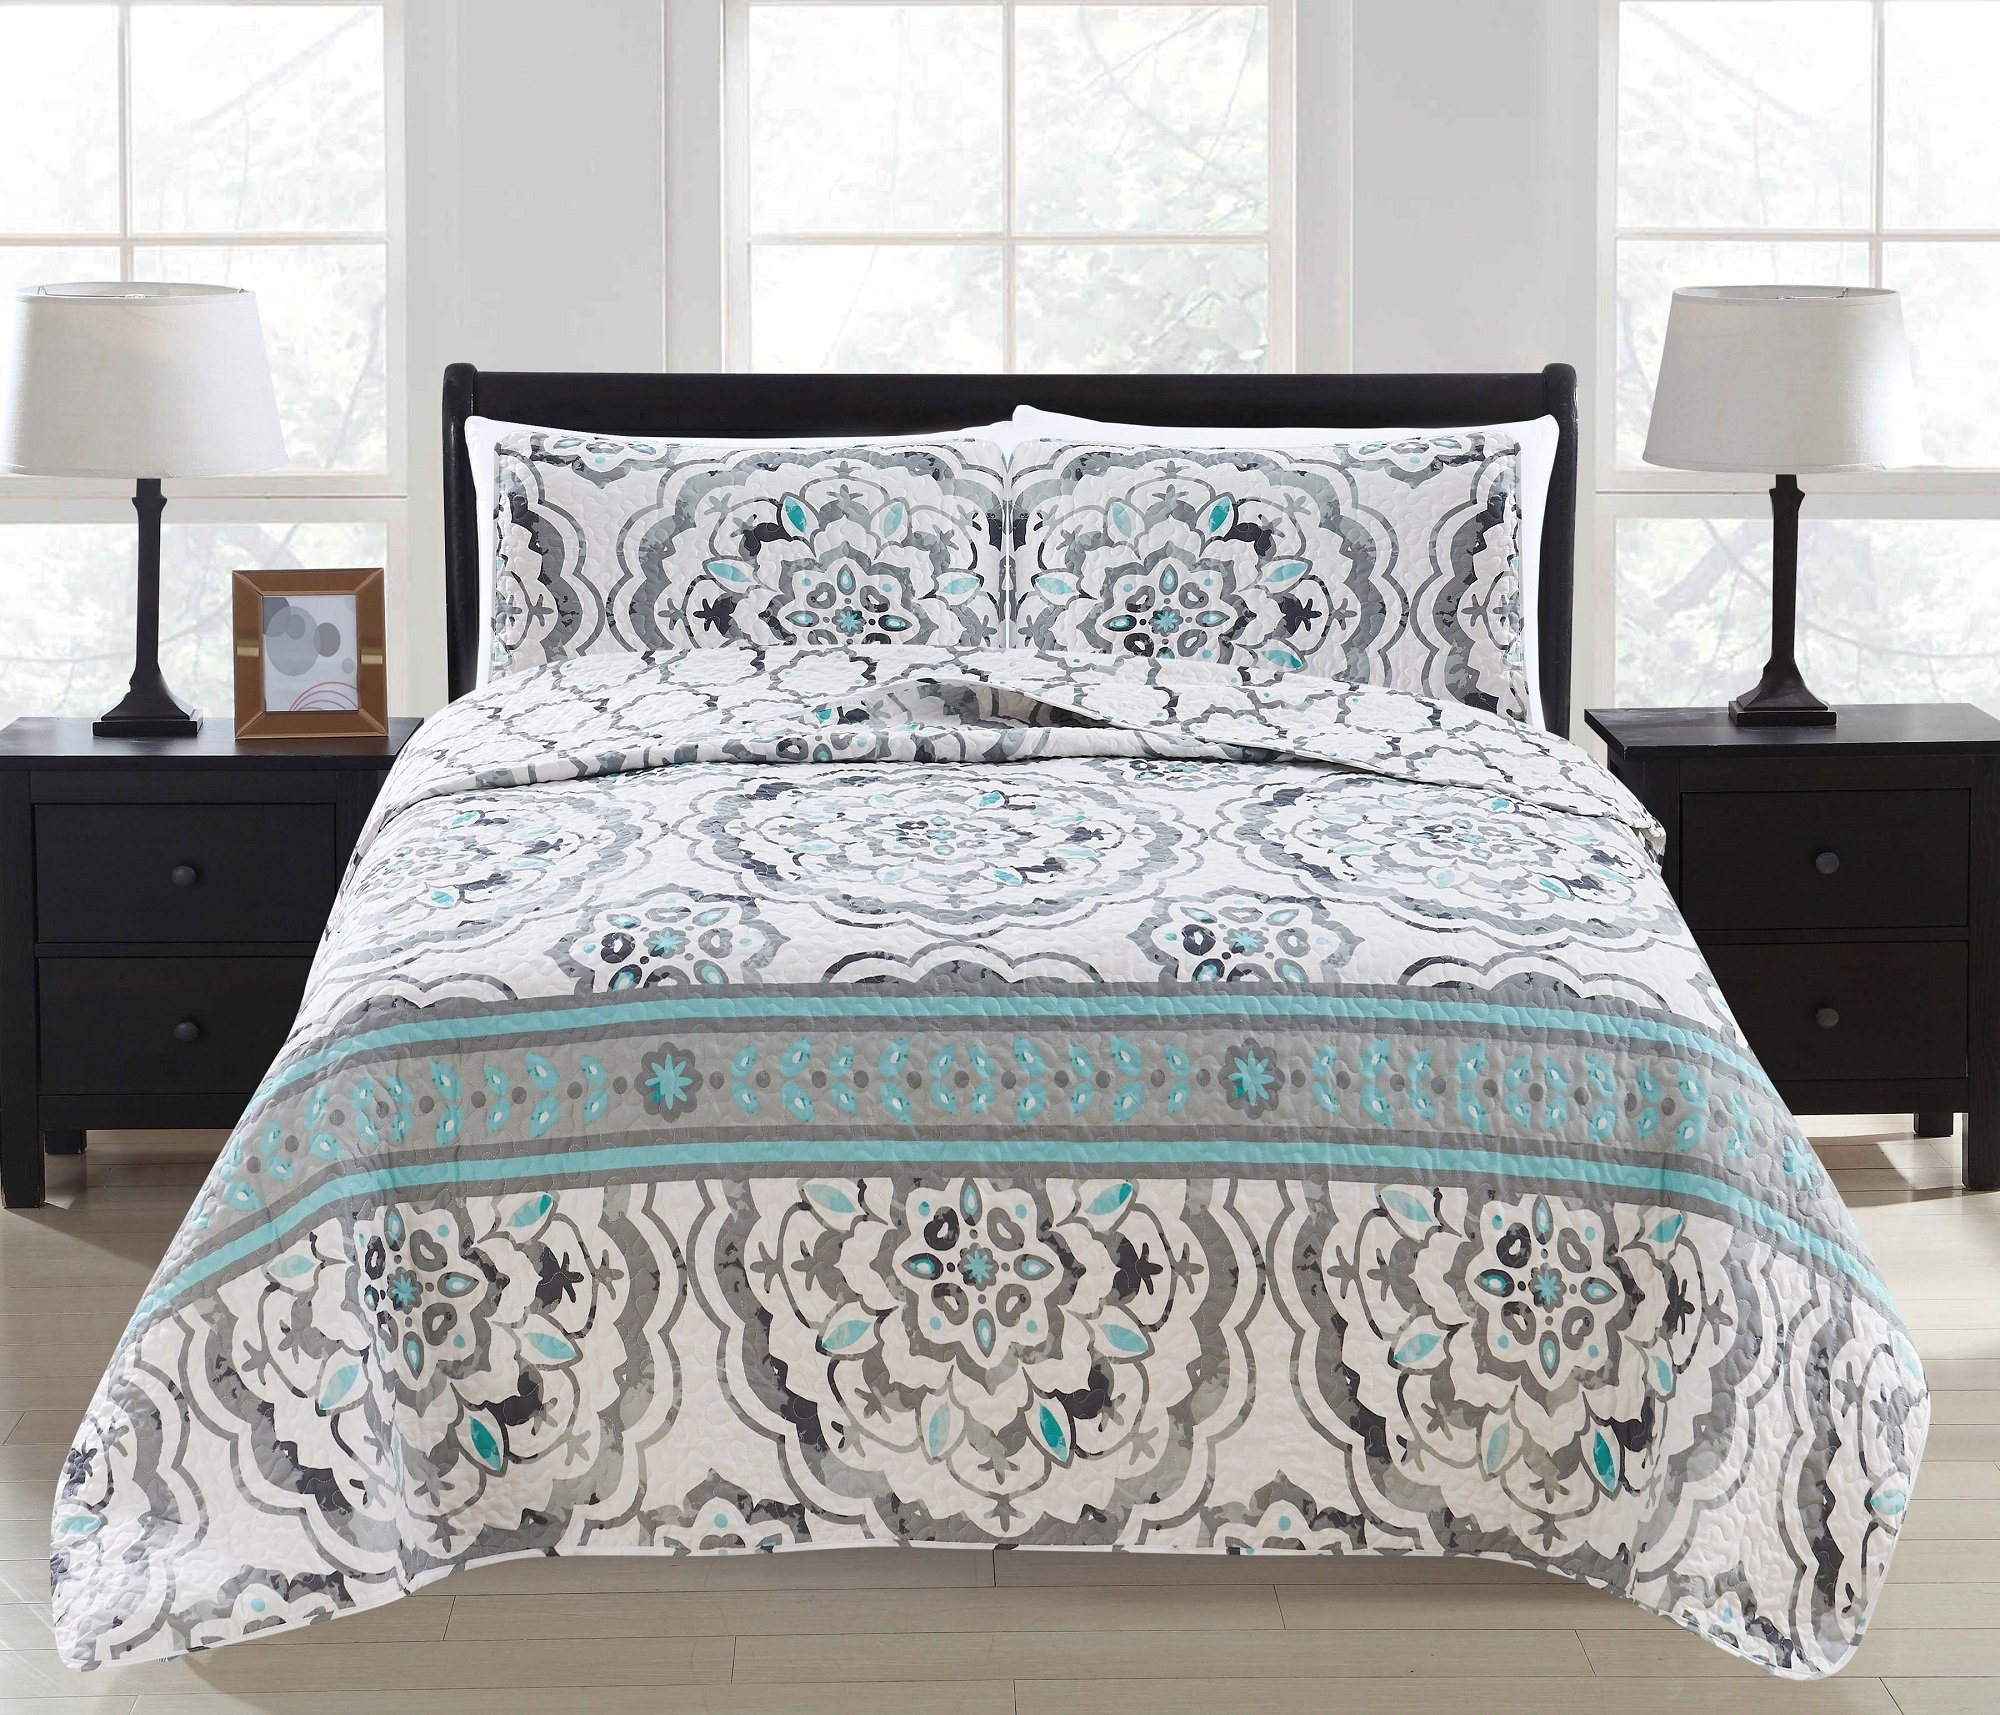 Great Bay Home 3-Piece Printed Quilt Set with Shams. All-Season Cotton-Polyester Bedspread with Abstract Large Scale Geometric Pattern. Farrah Collection By Brand. (Full/Queen, Grey)